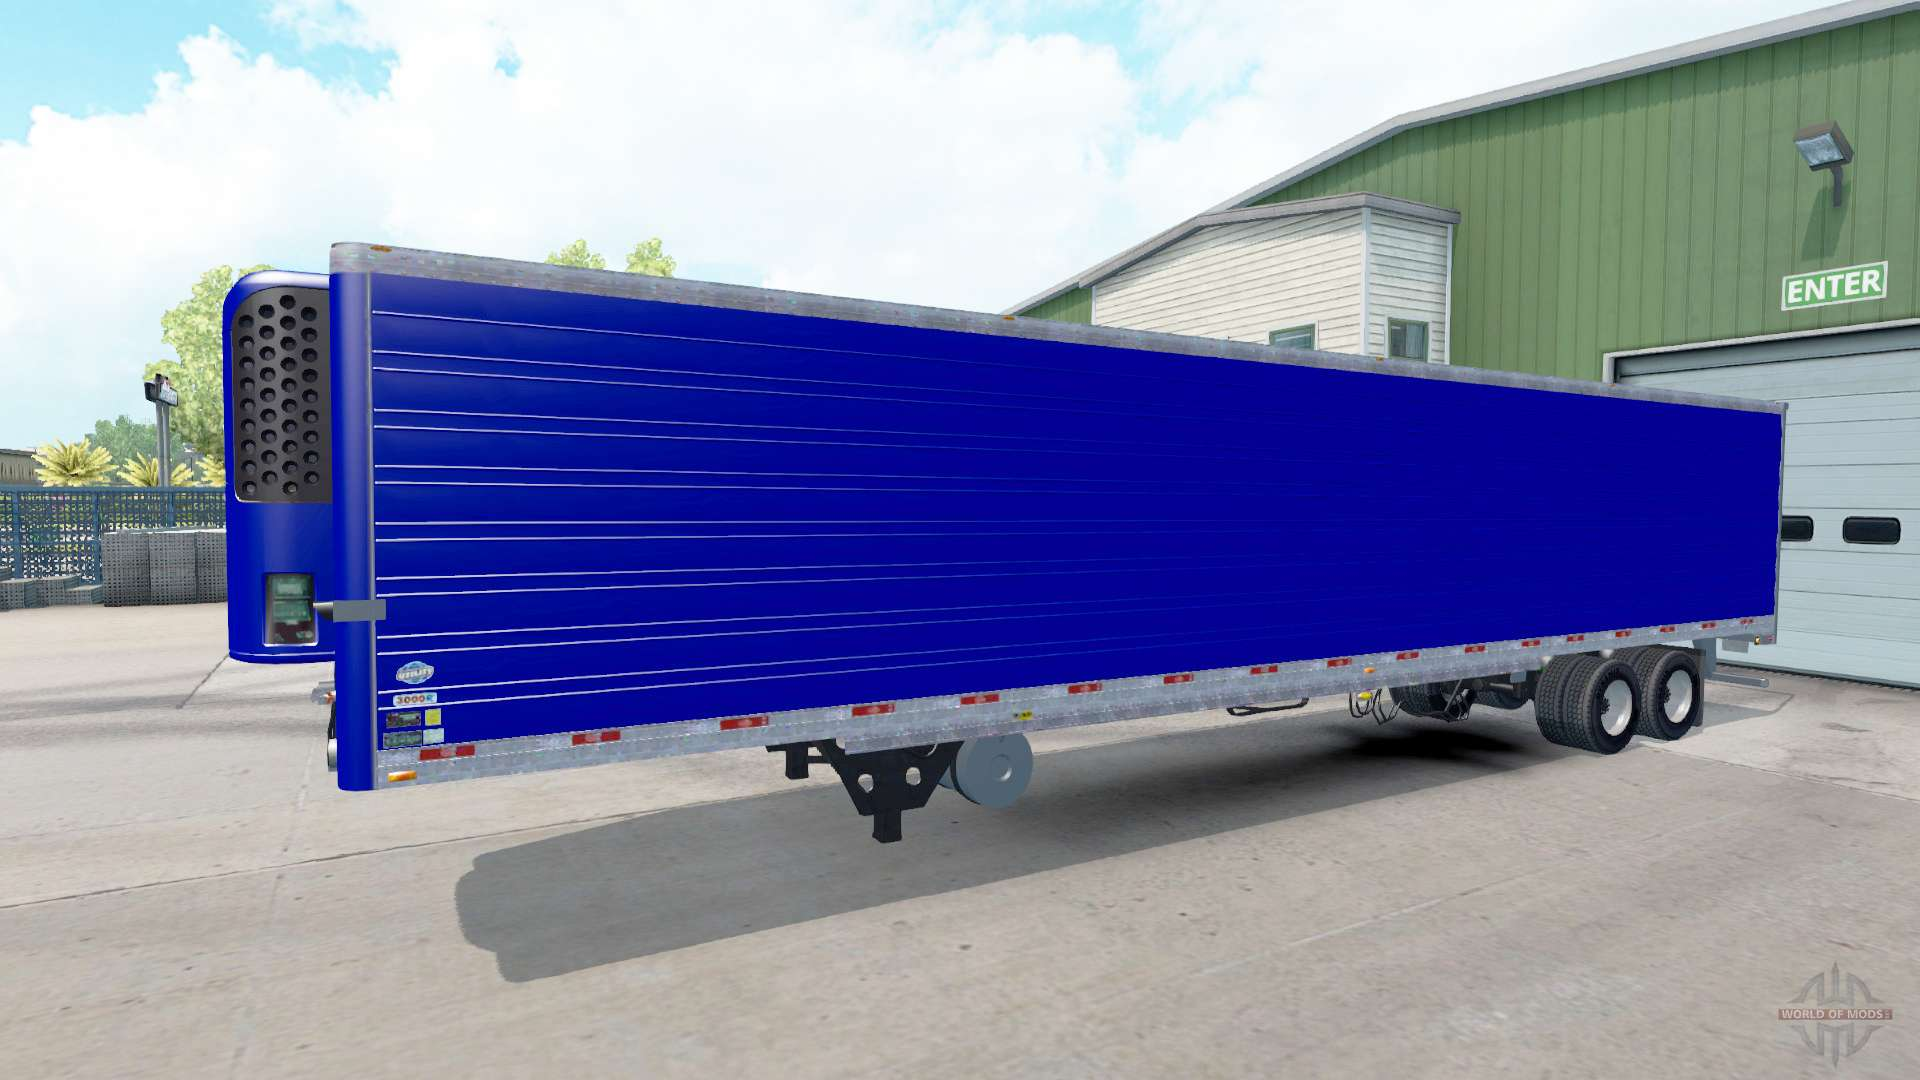 Vans moreover 53 Quad Axle Super Max Flatbed also Mega Trailers together with 3 further File iso container seal. on semi truck reefer trailers